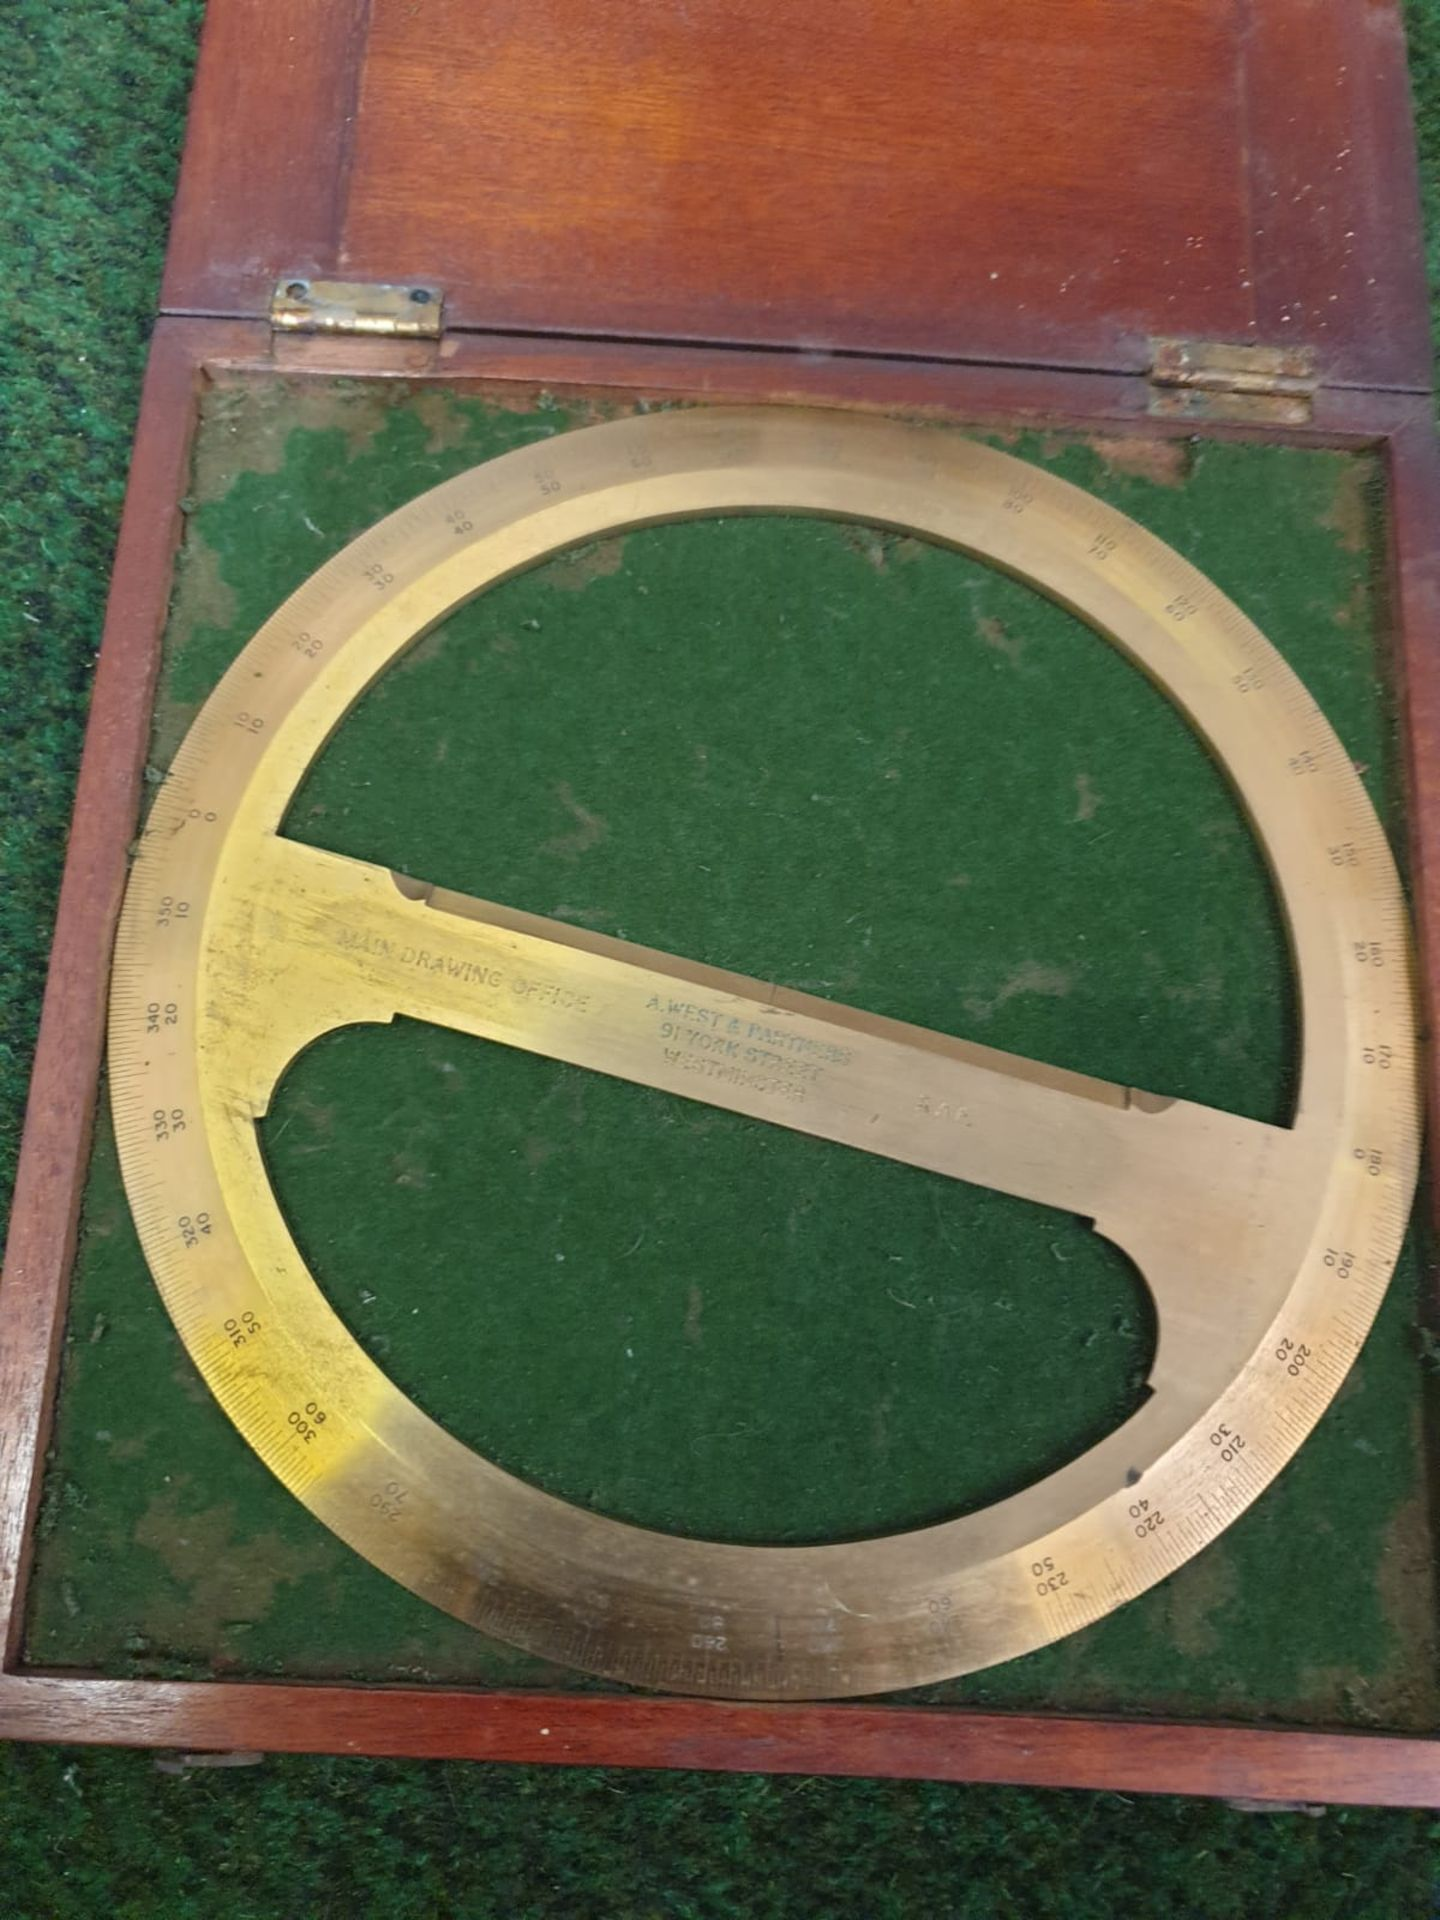 RAF Brass, 360 degree, circular Protractor with crossbar, a scientific drawing instrument in its - Image 3 of 4